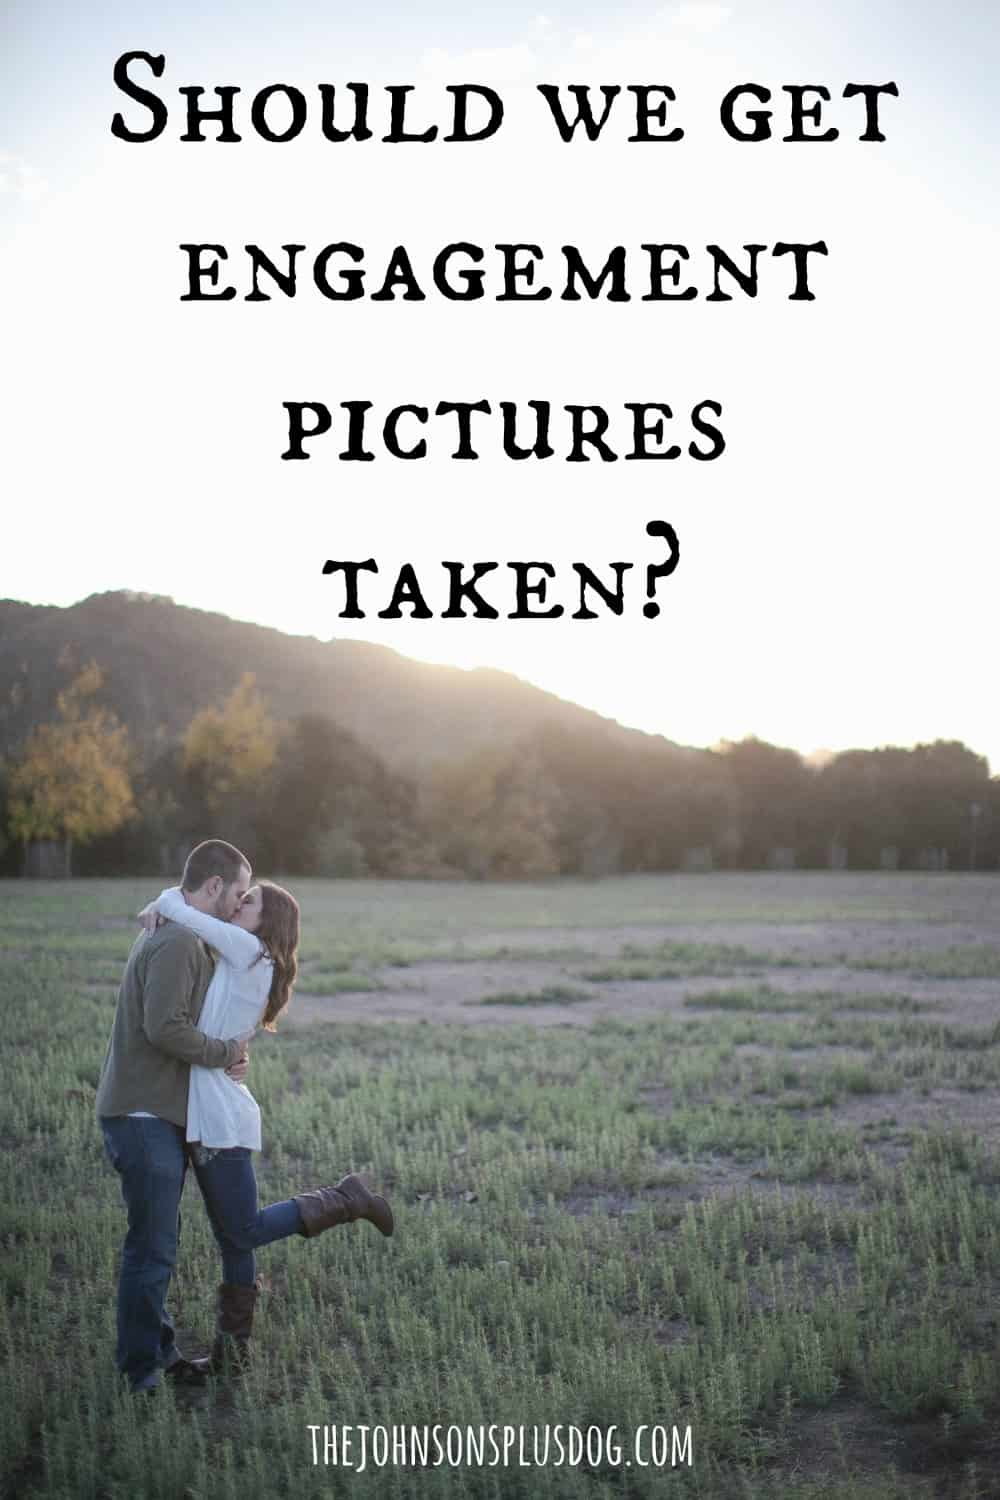 Should we get engagement pictures taken?